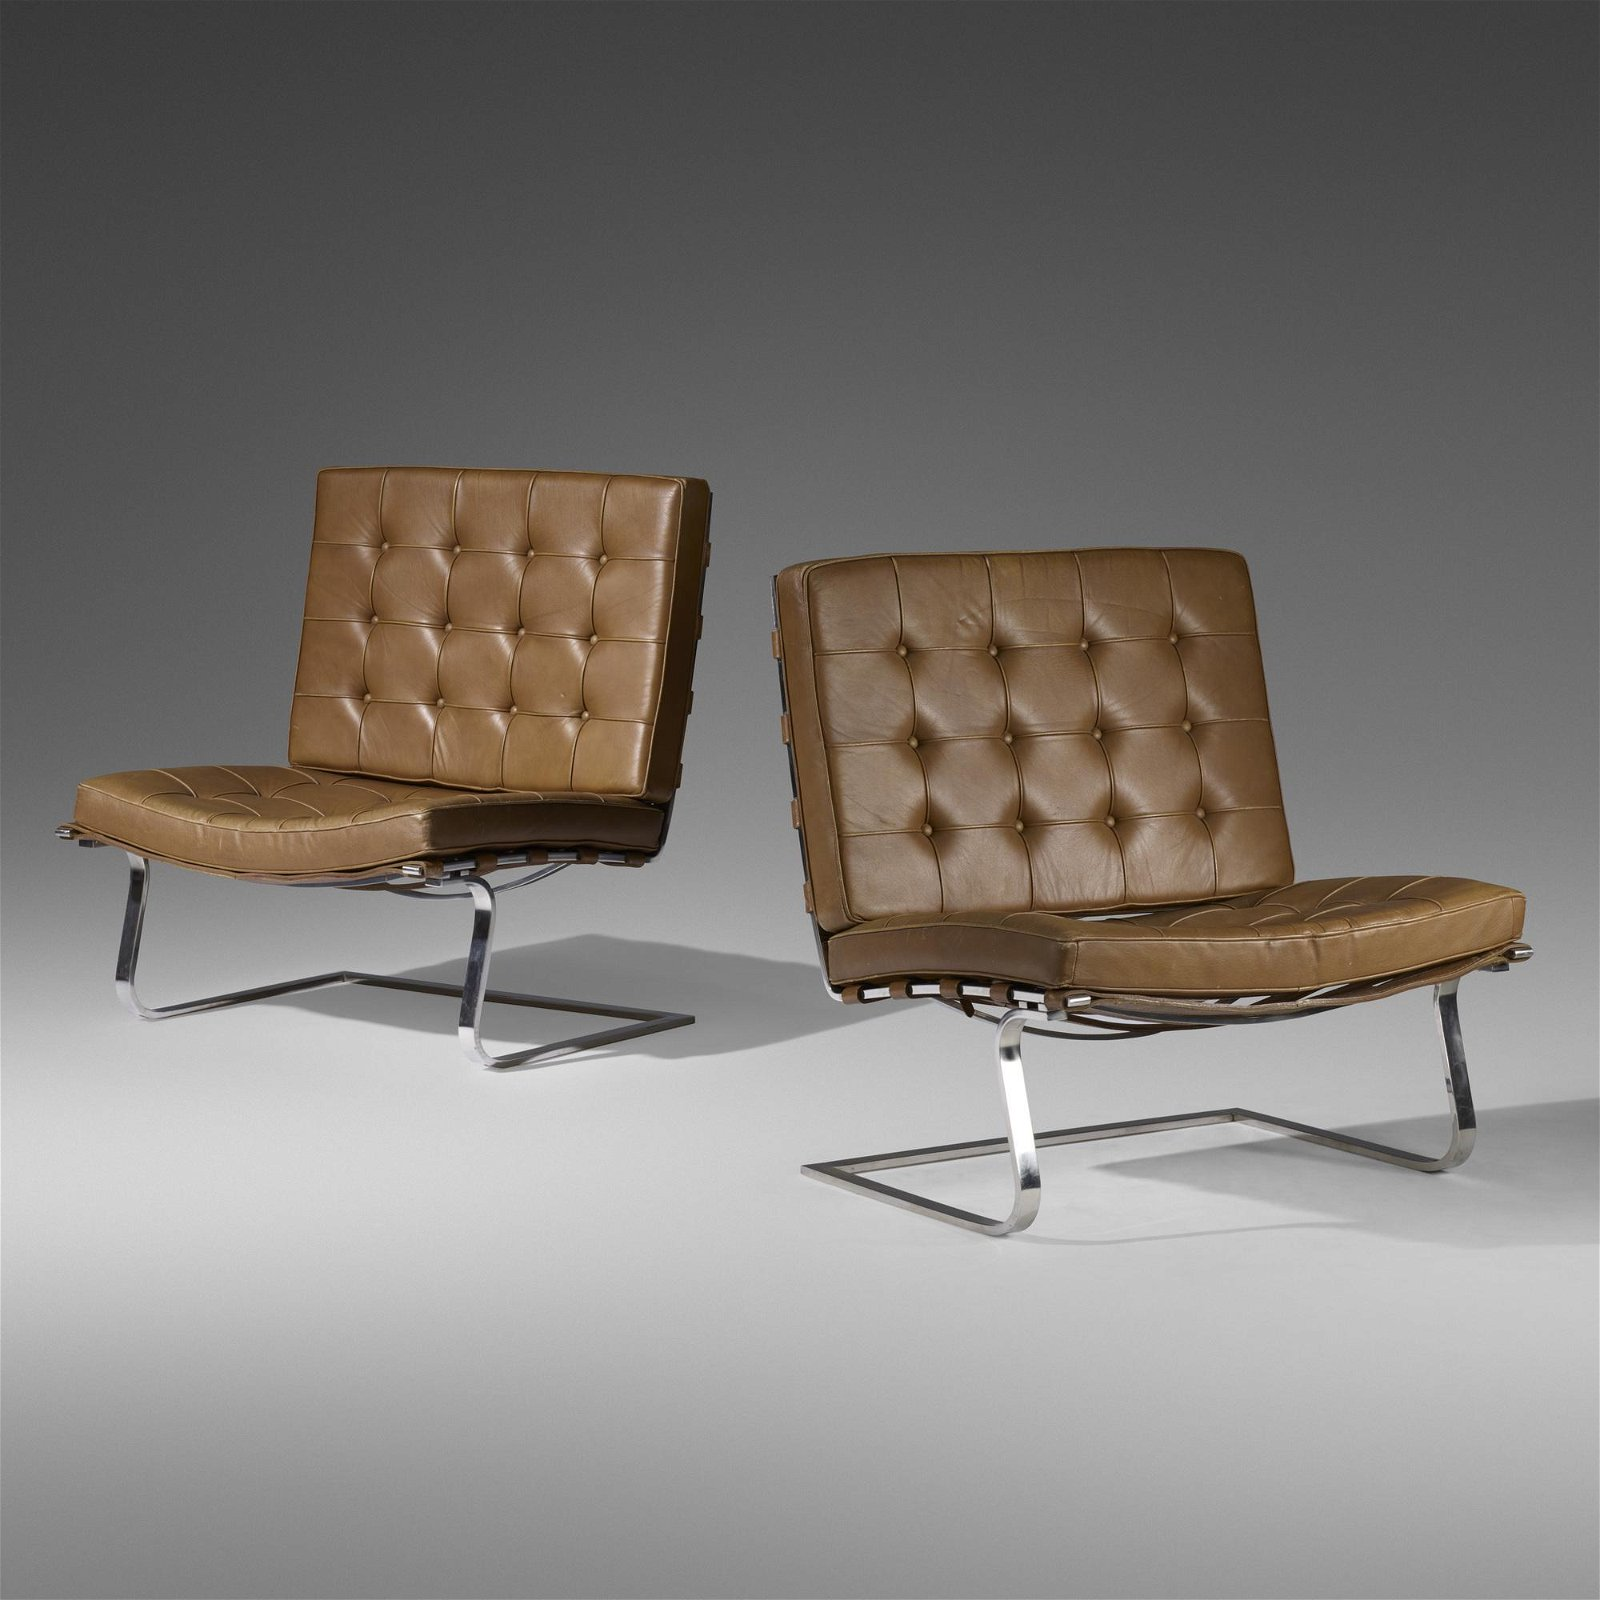 Ludwig Mies van der Rohe, Tugendhat chairs, pair